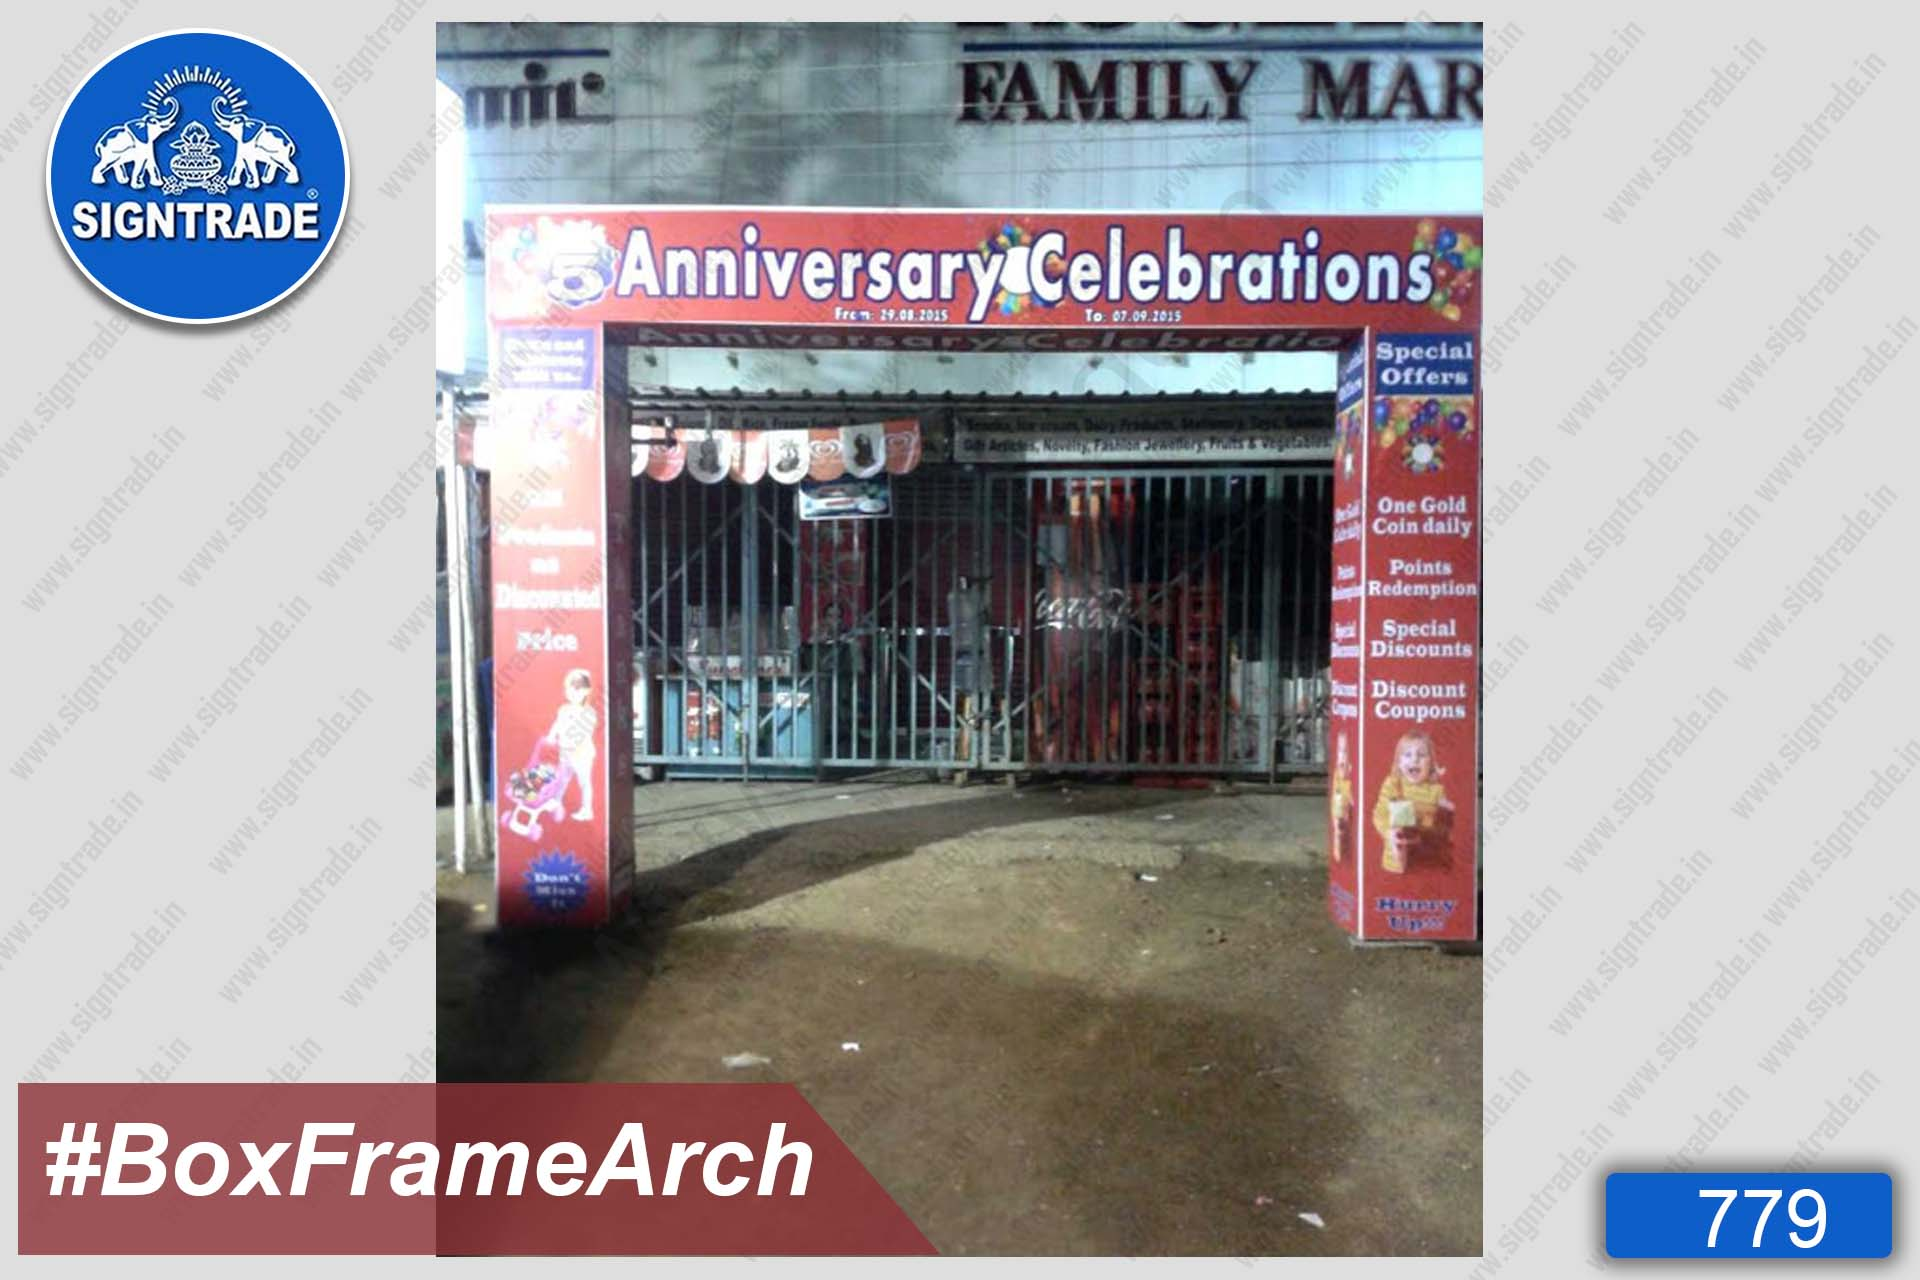 Anniversary Celebrations - Promotional Arch